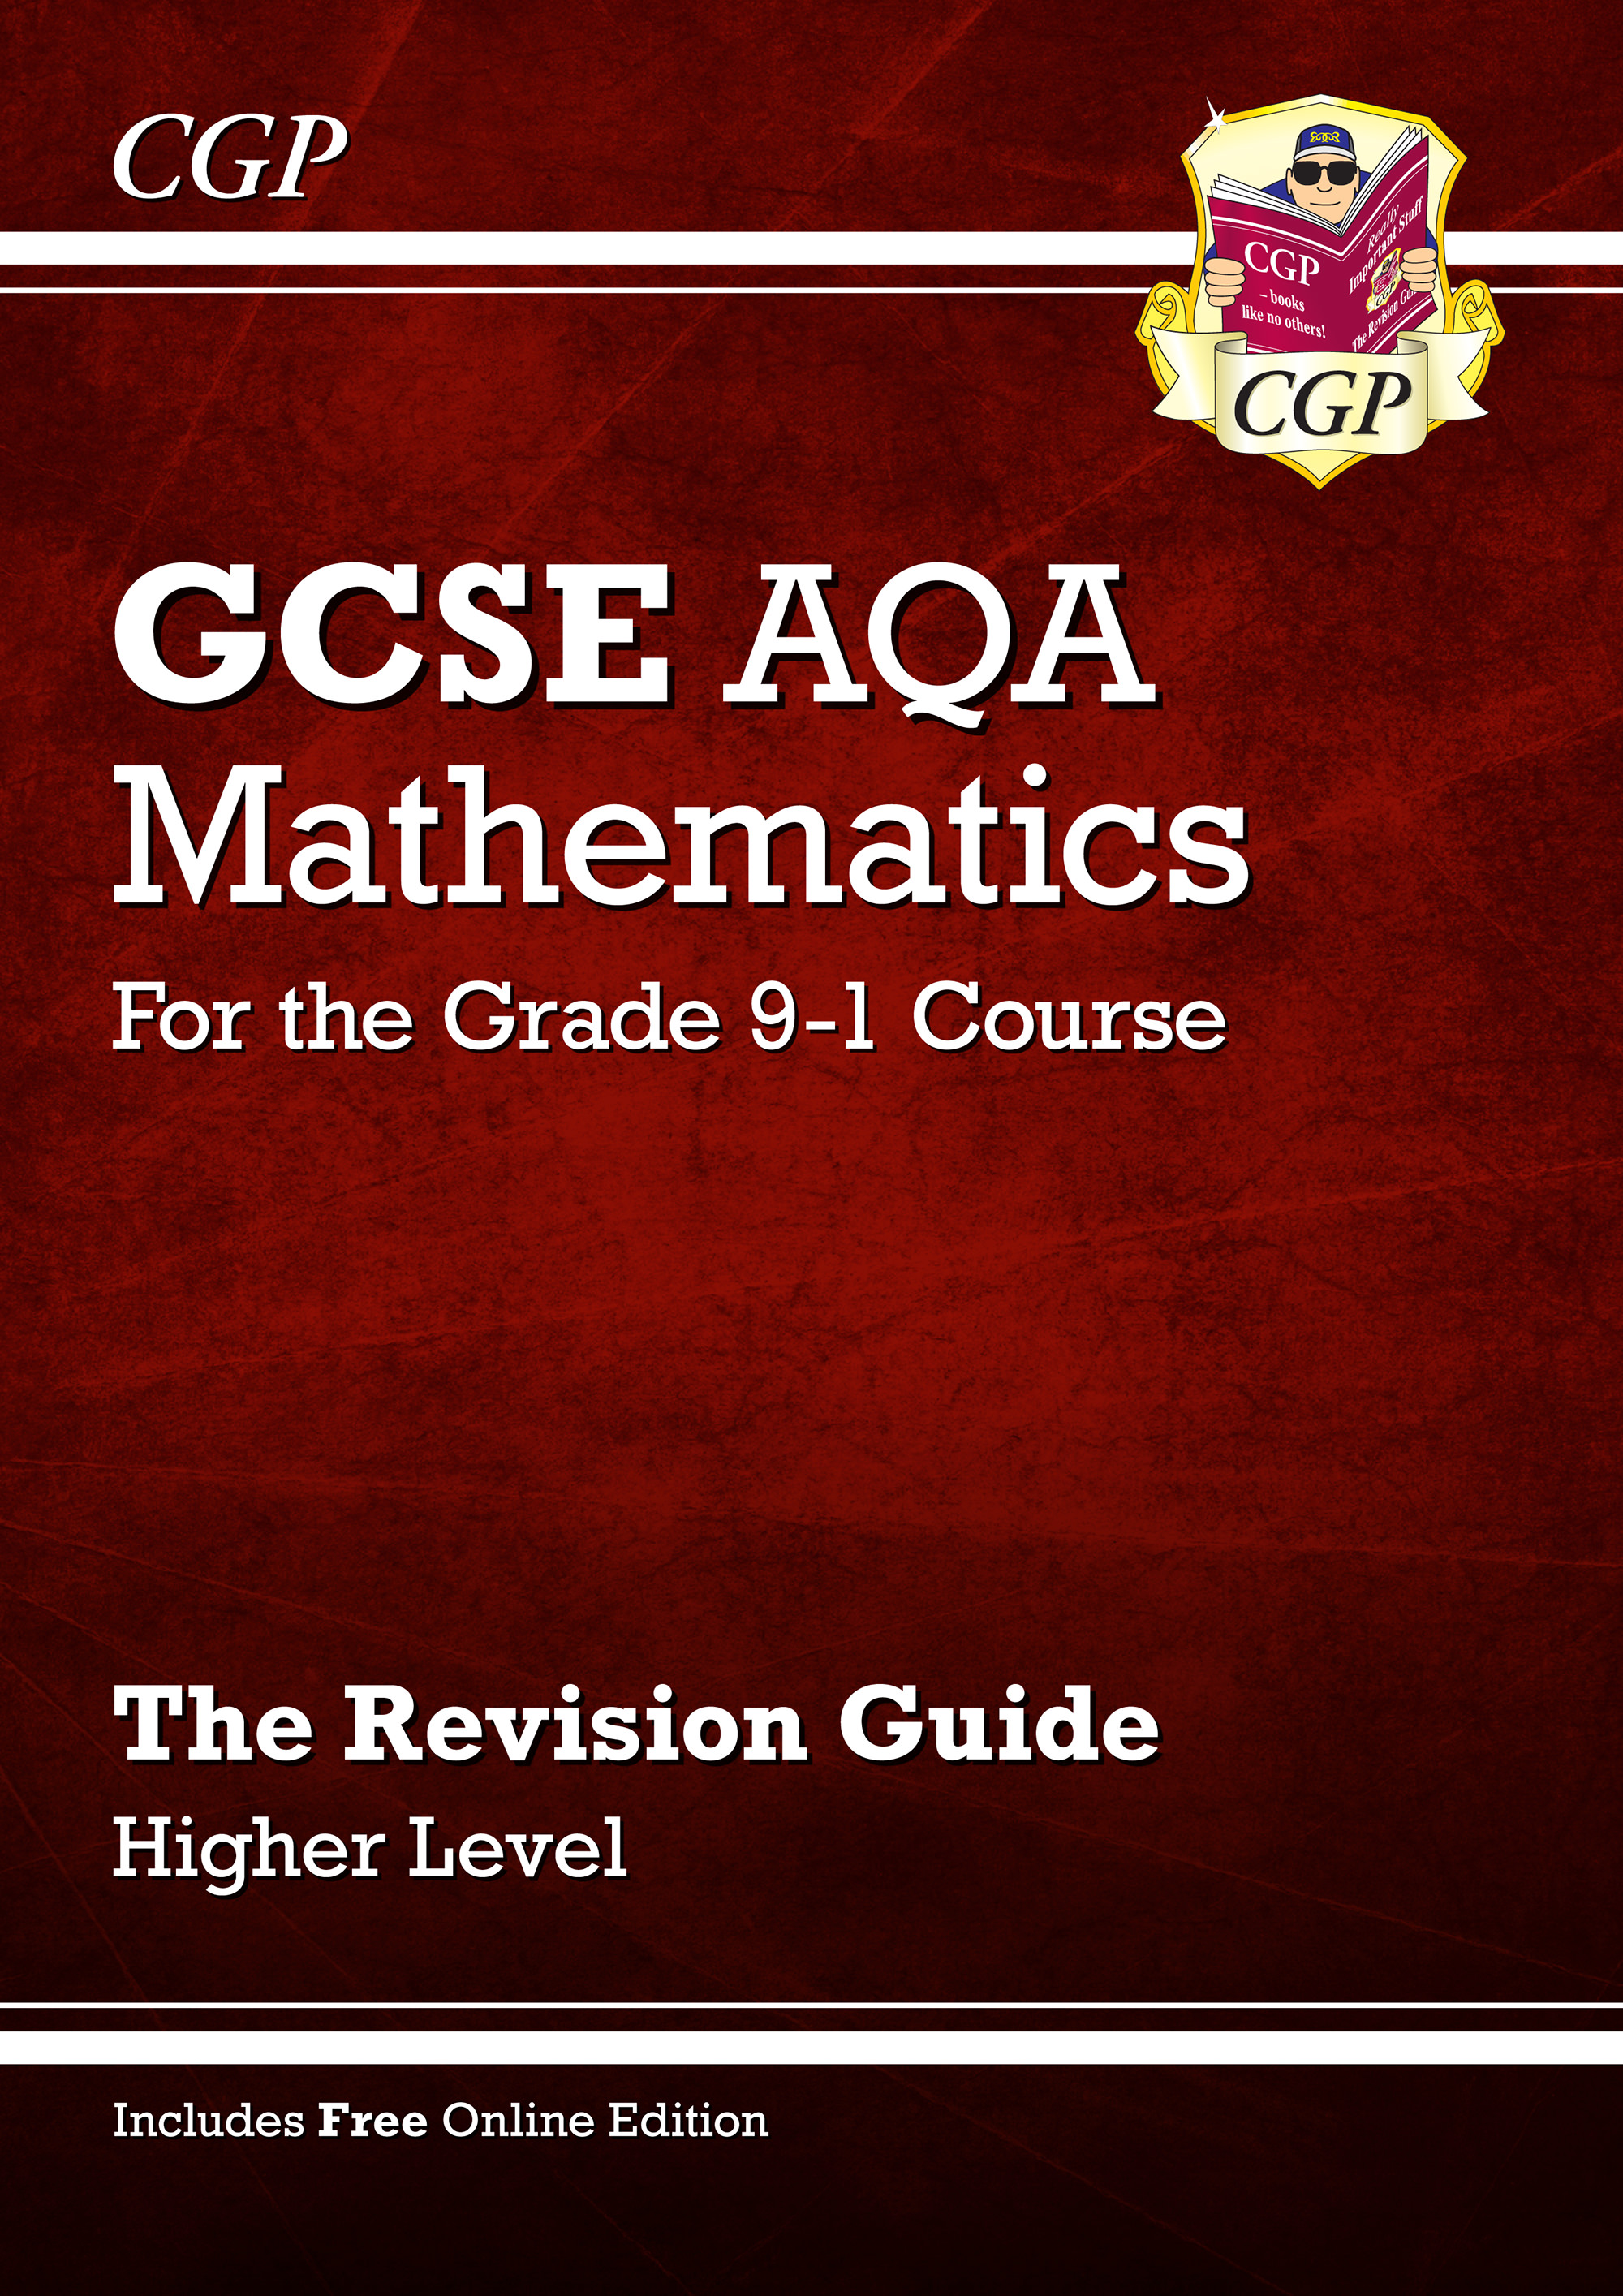 GCSE Maths AQA Revision Guide: Higher - for the Grade 9-1 Course (with  Online Edition) | CGP Books